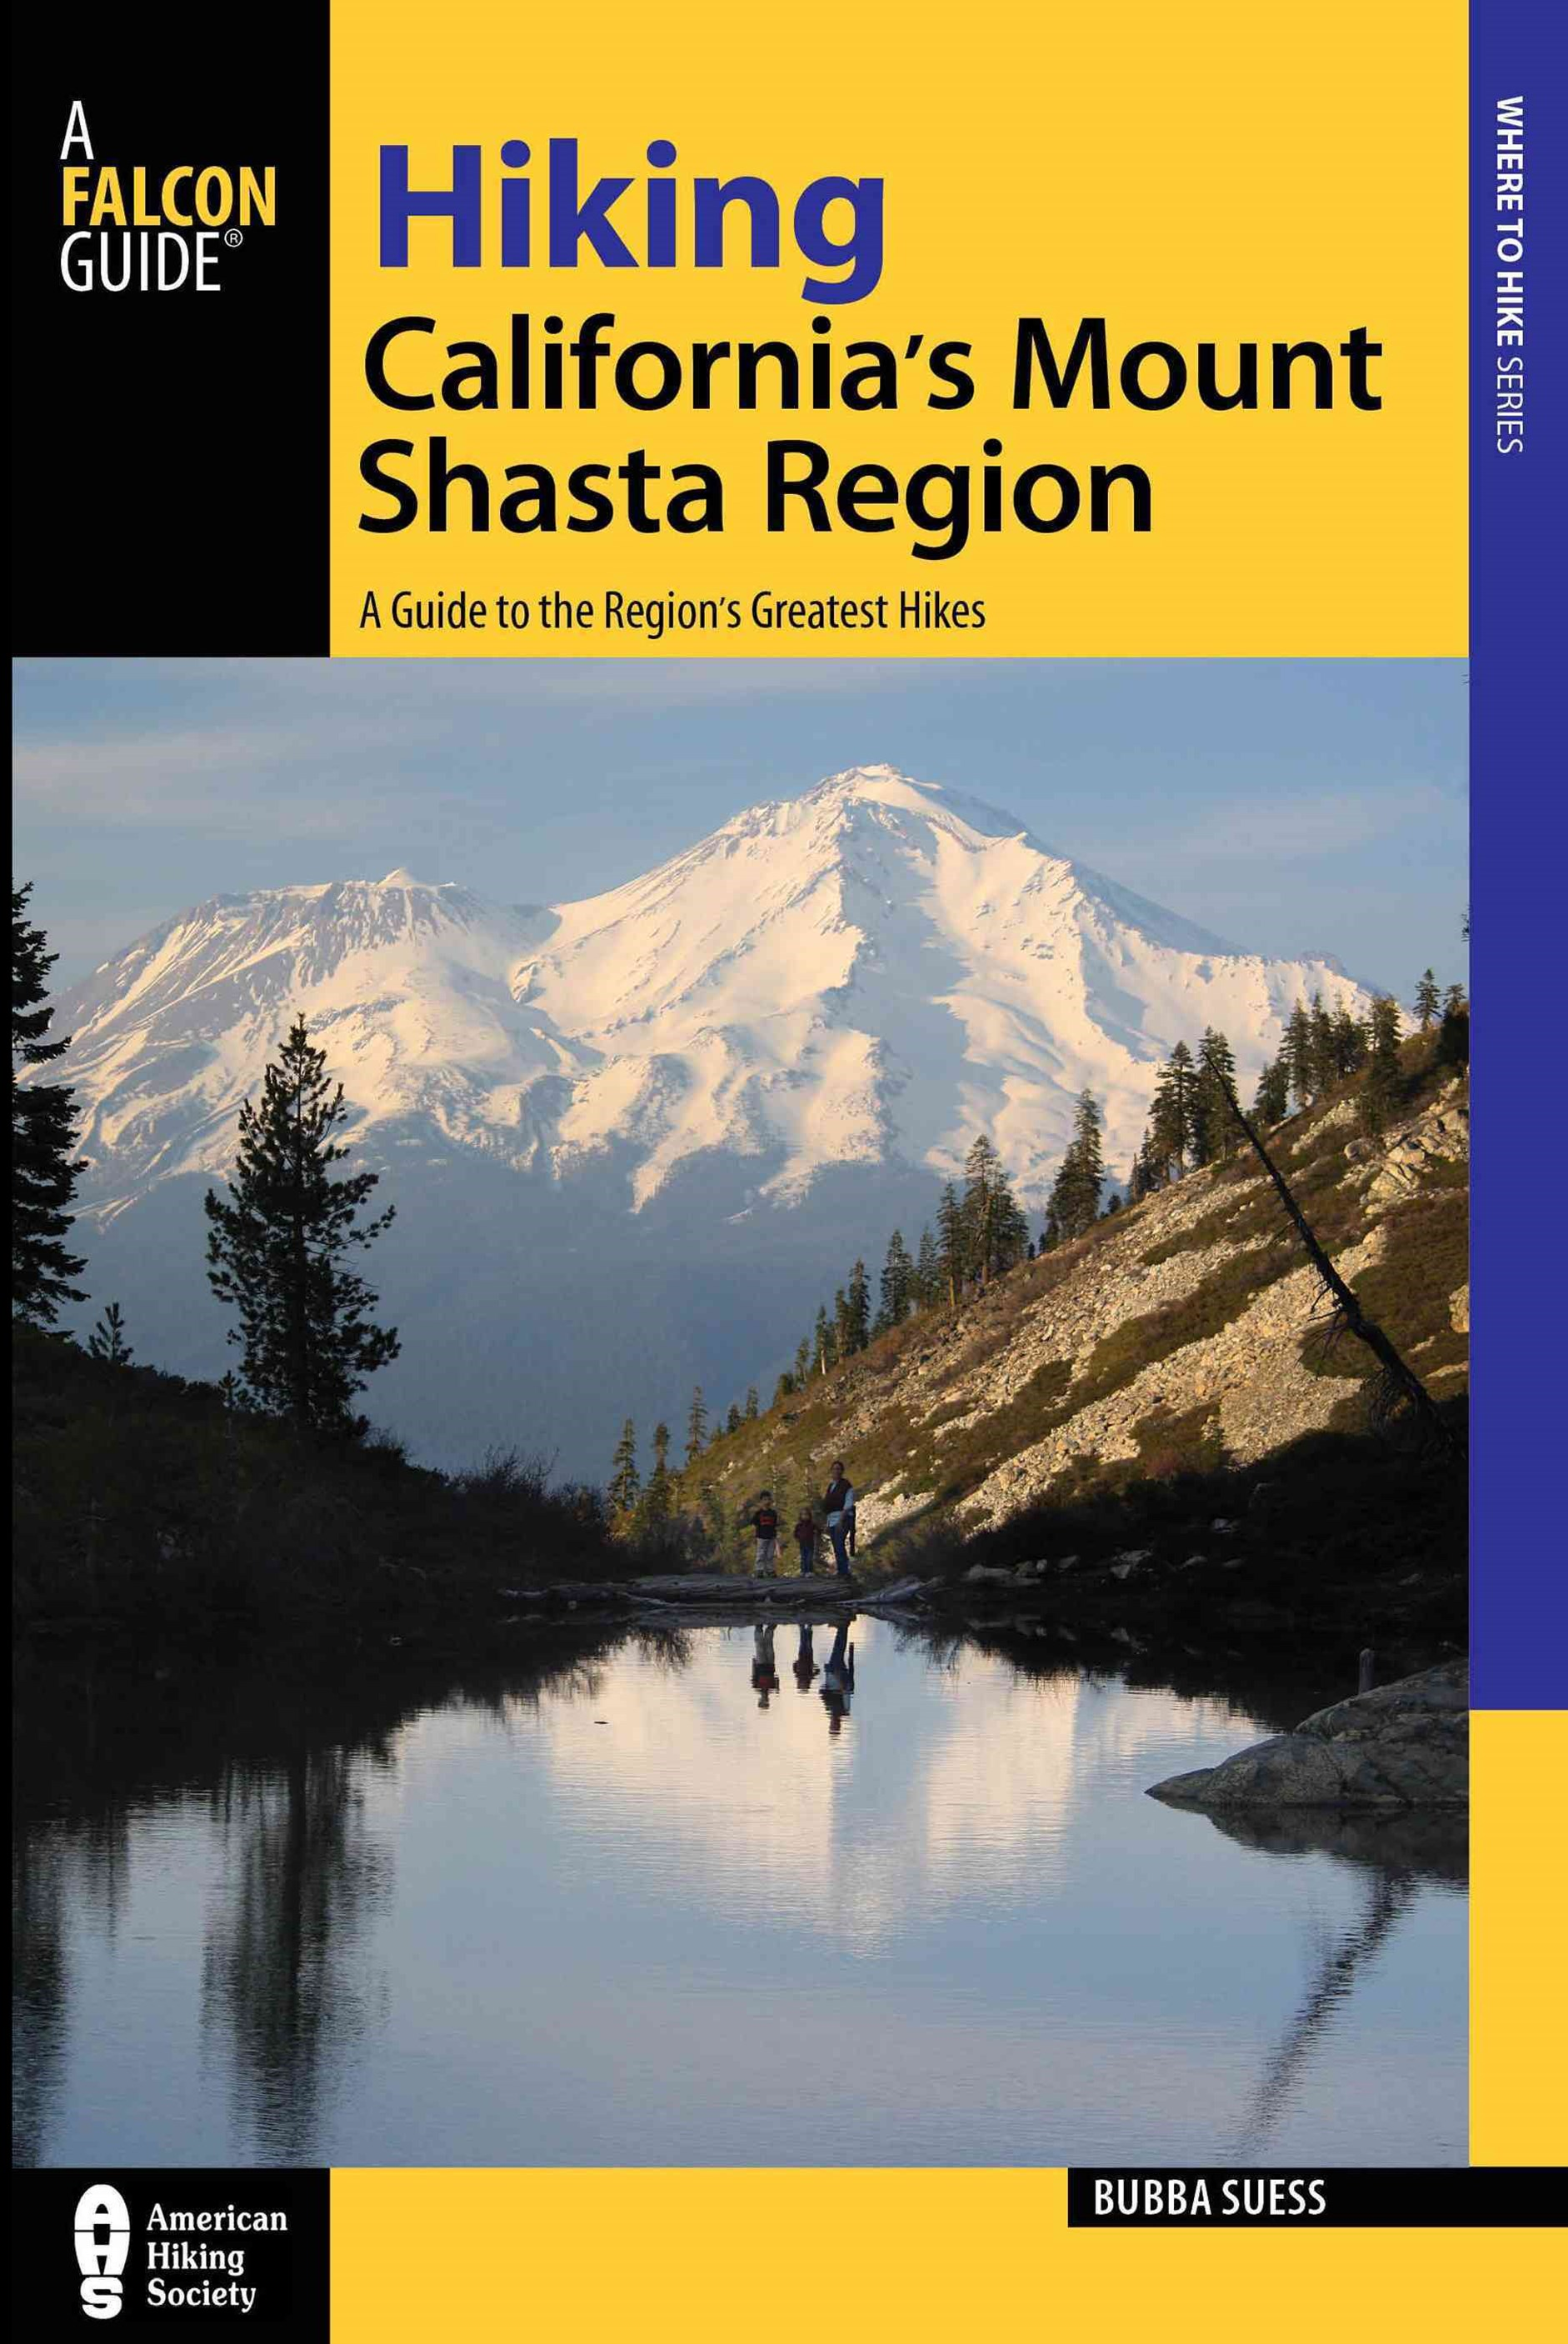 Hiking California's Mount Sshasta Region